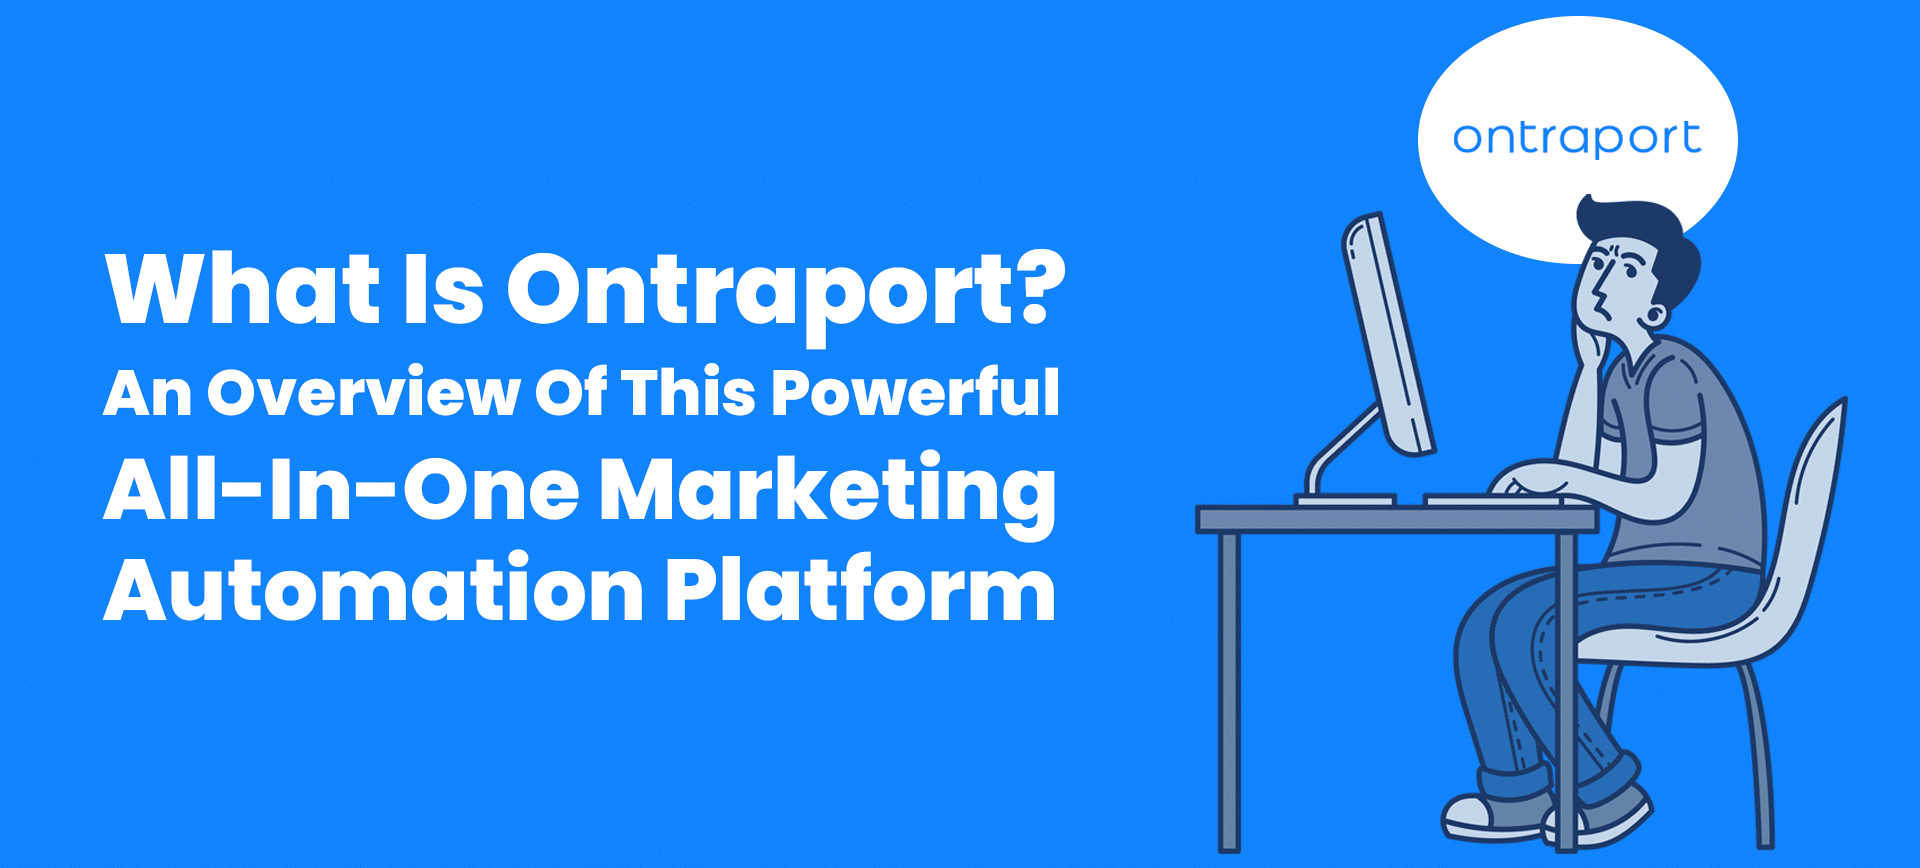 What Is Ontraport A Guide To This Powerful All-In-One Marketing Automation Platform